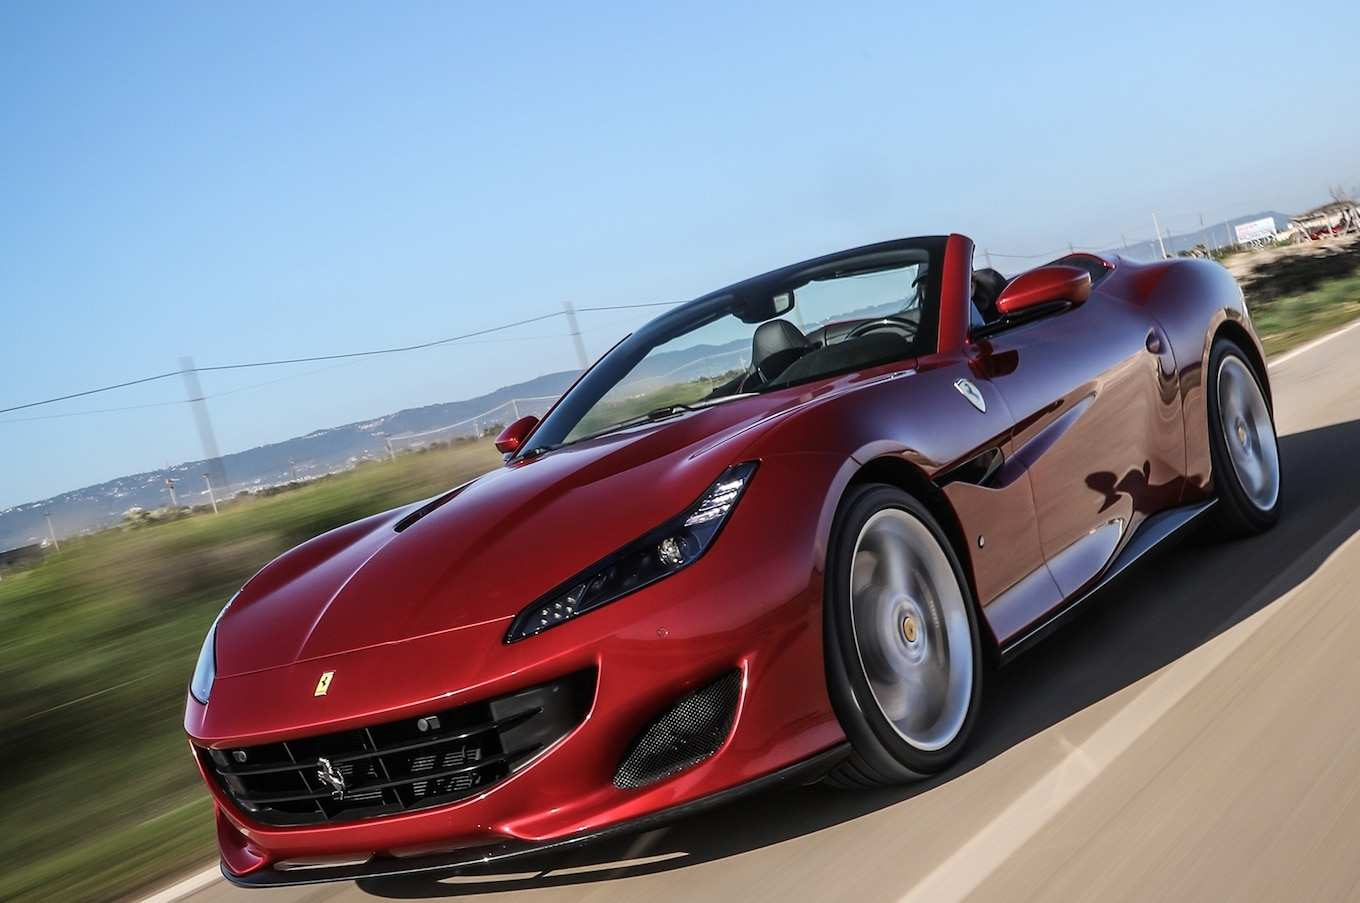 86 New The Ferrari In Uscita 2019 Price Images by The Ferrari In Uscita 2019 Price